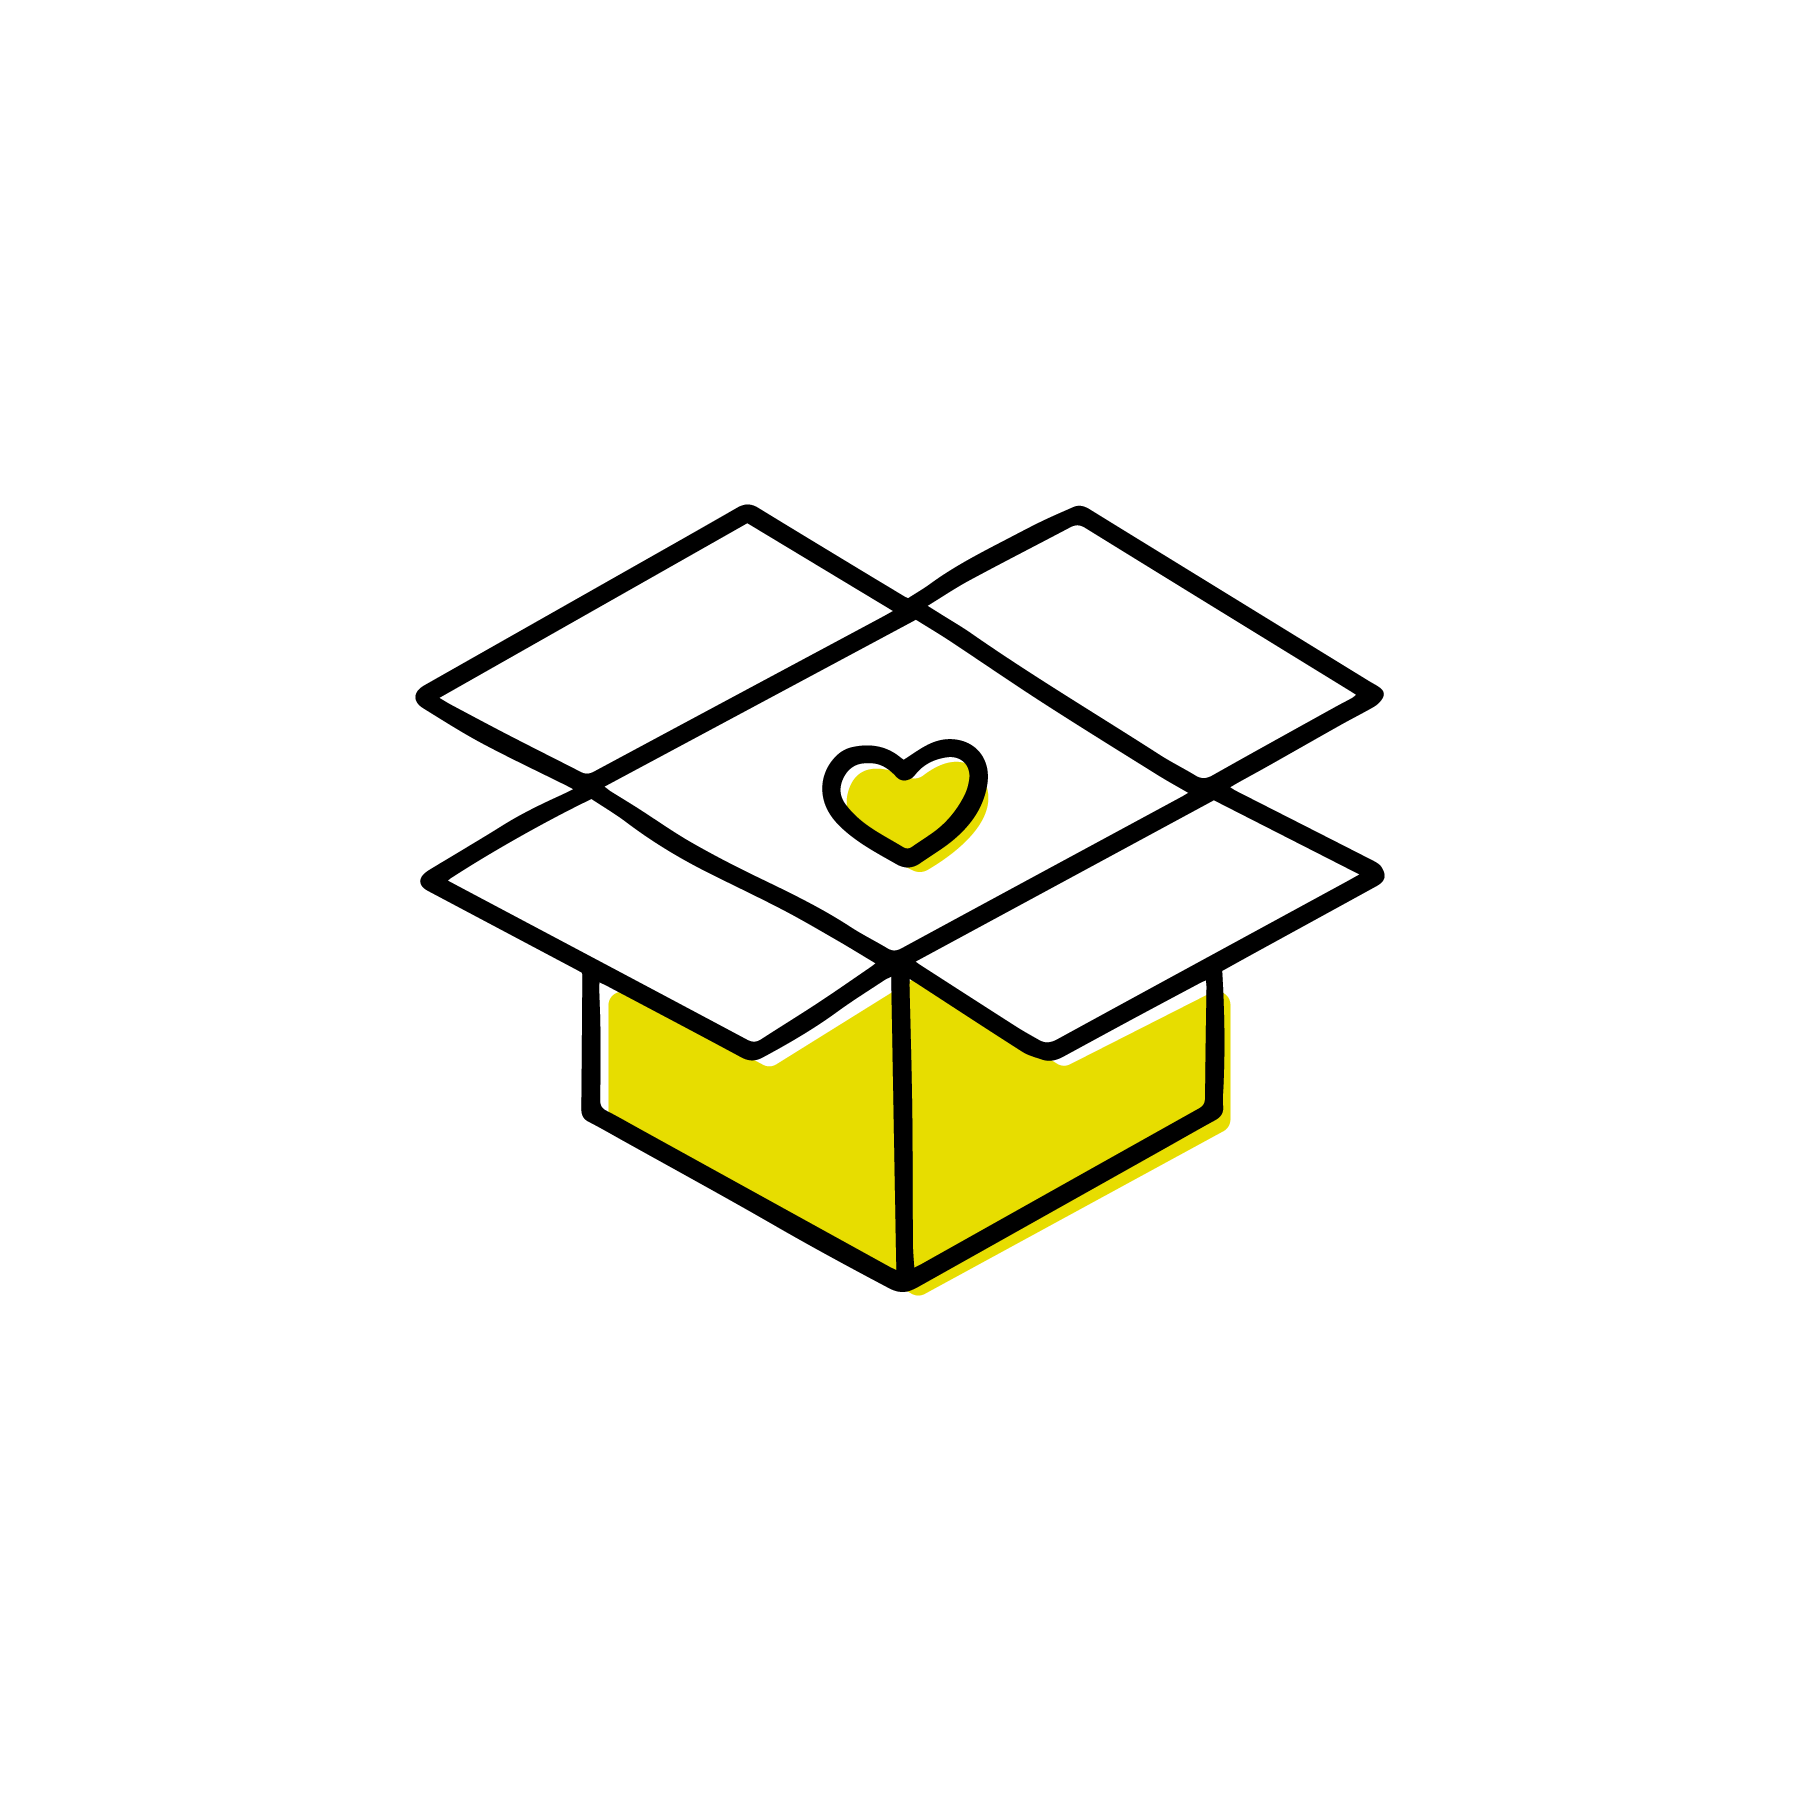 open box with heart icon